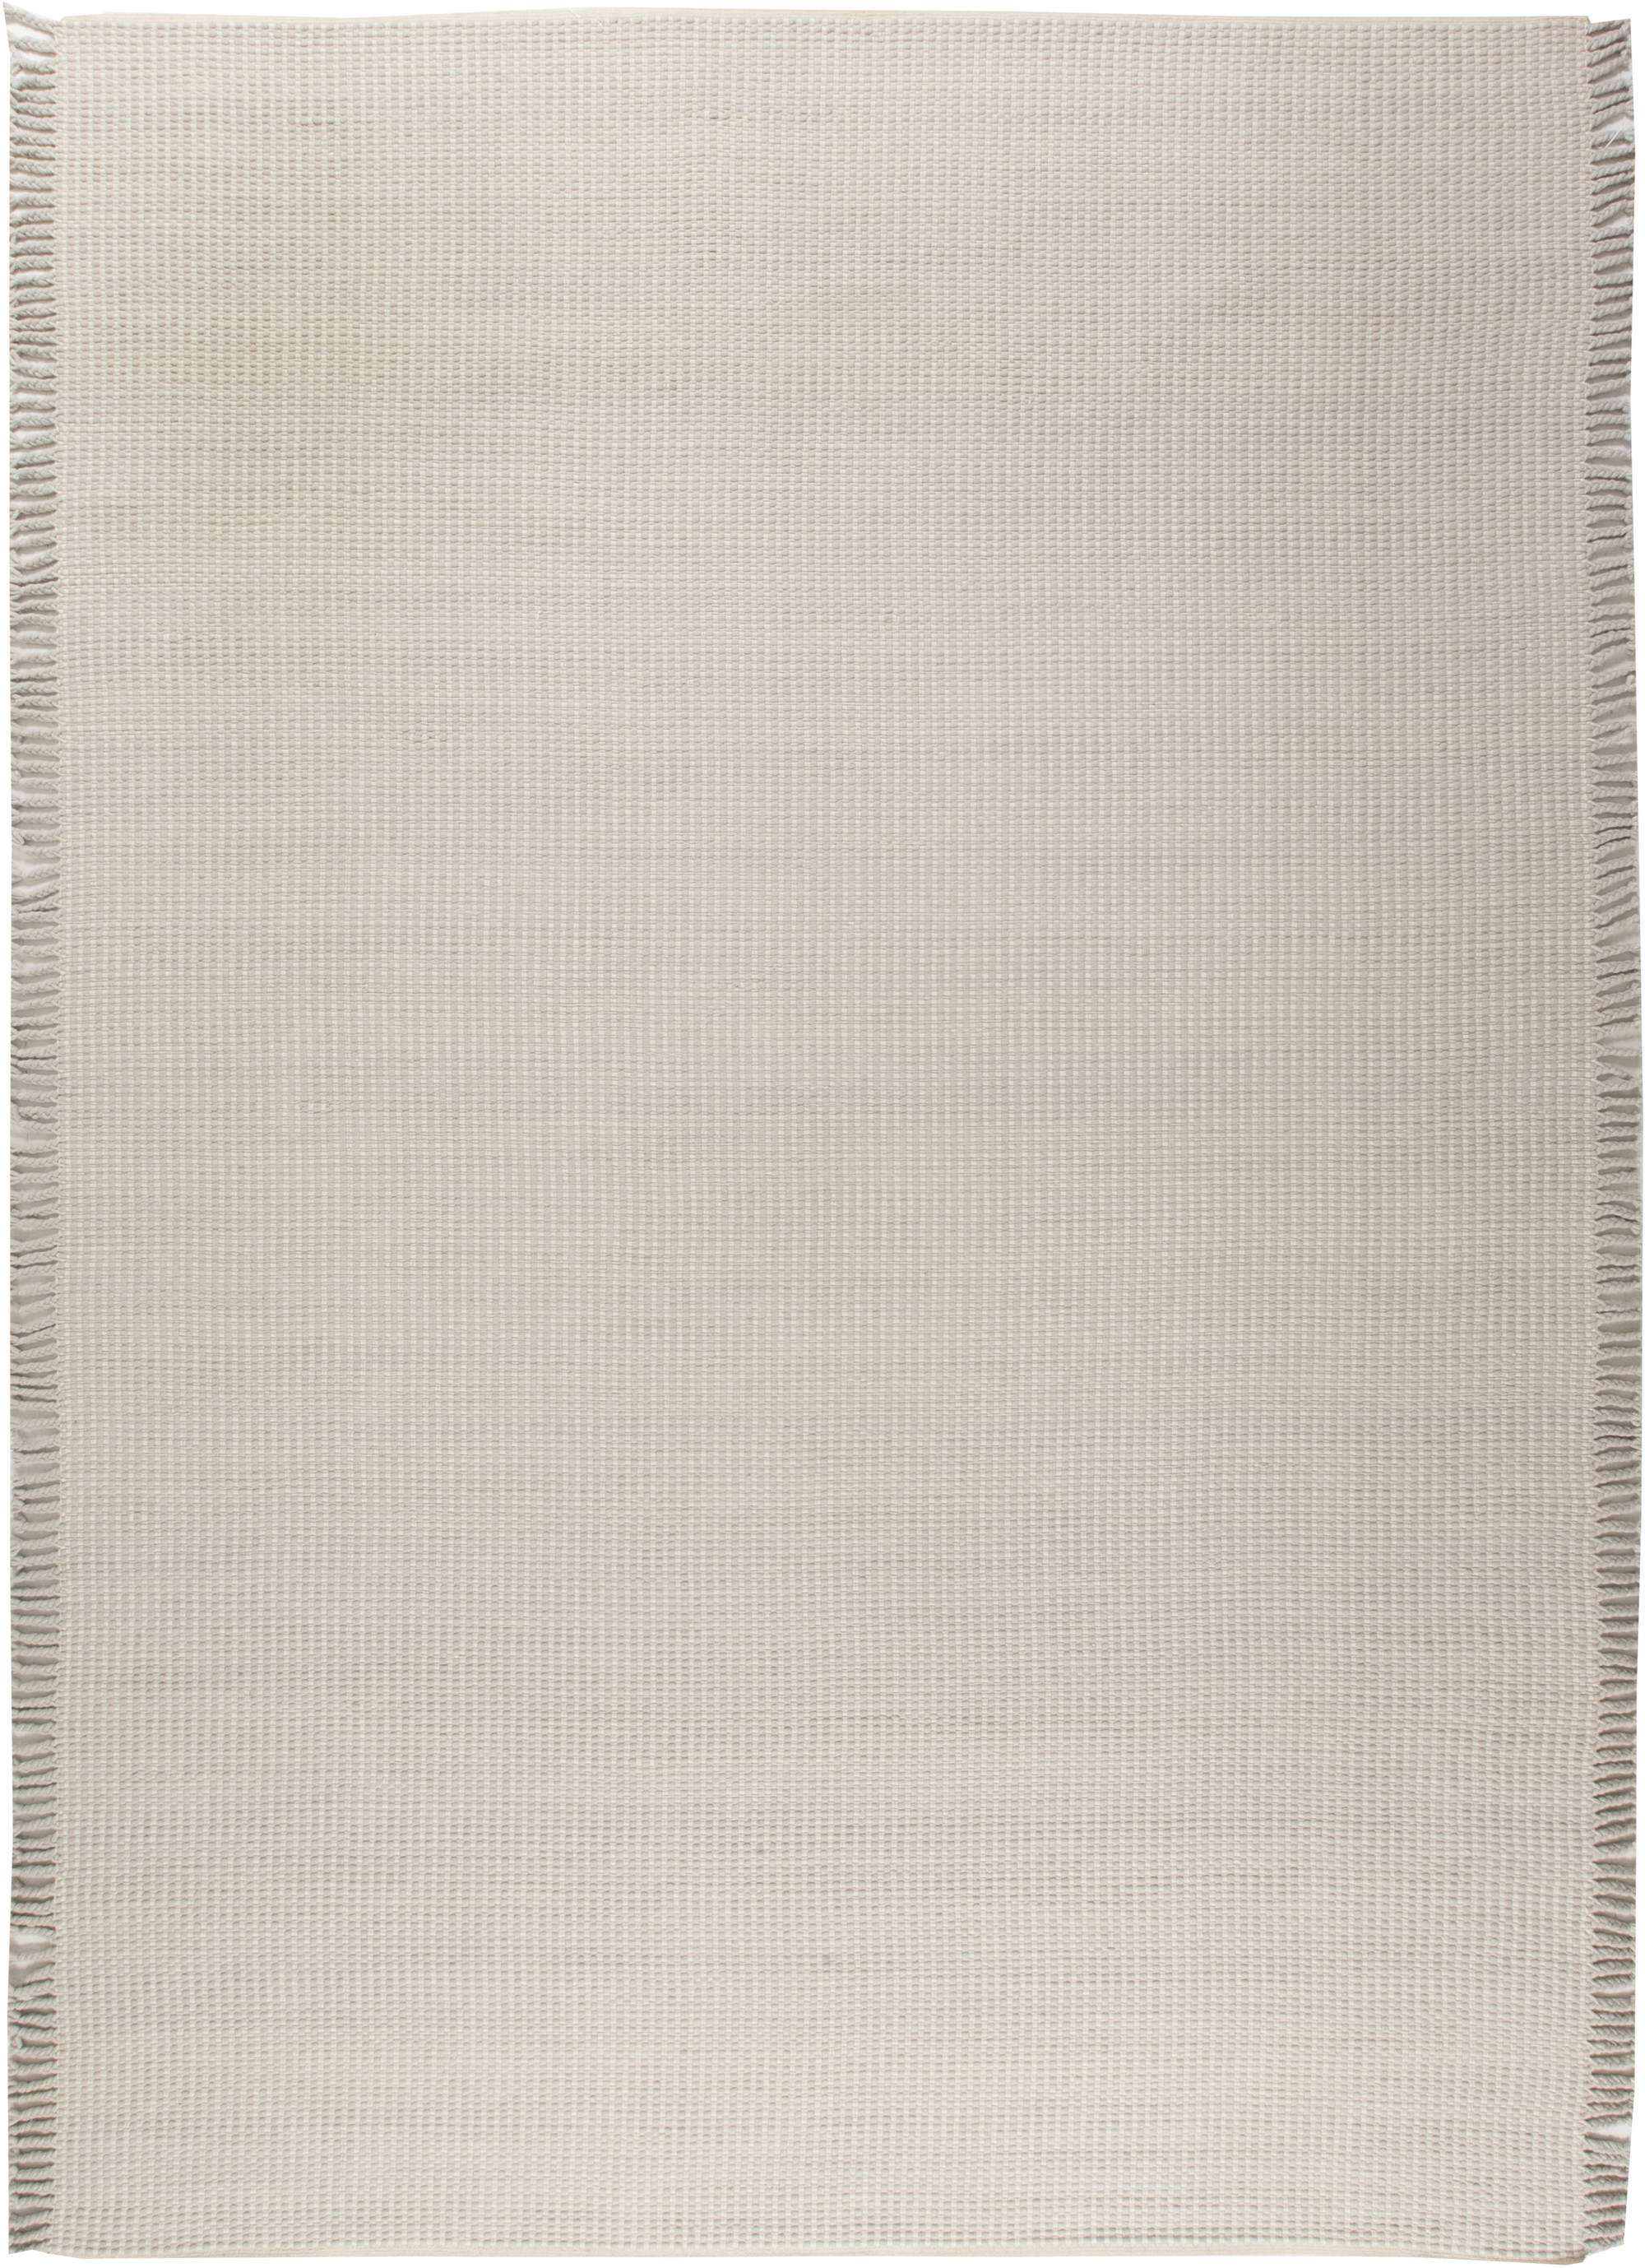 Contemporary Flat weave Rug N11705